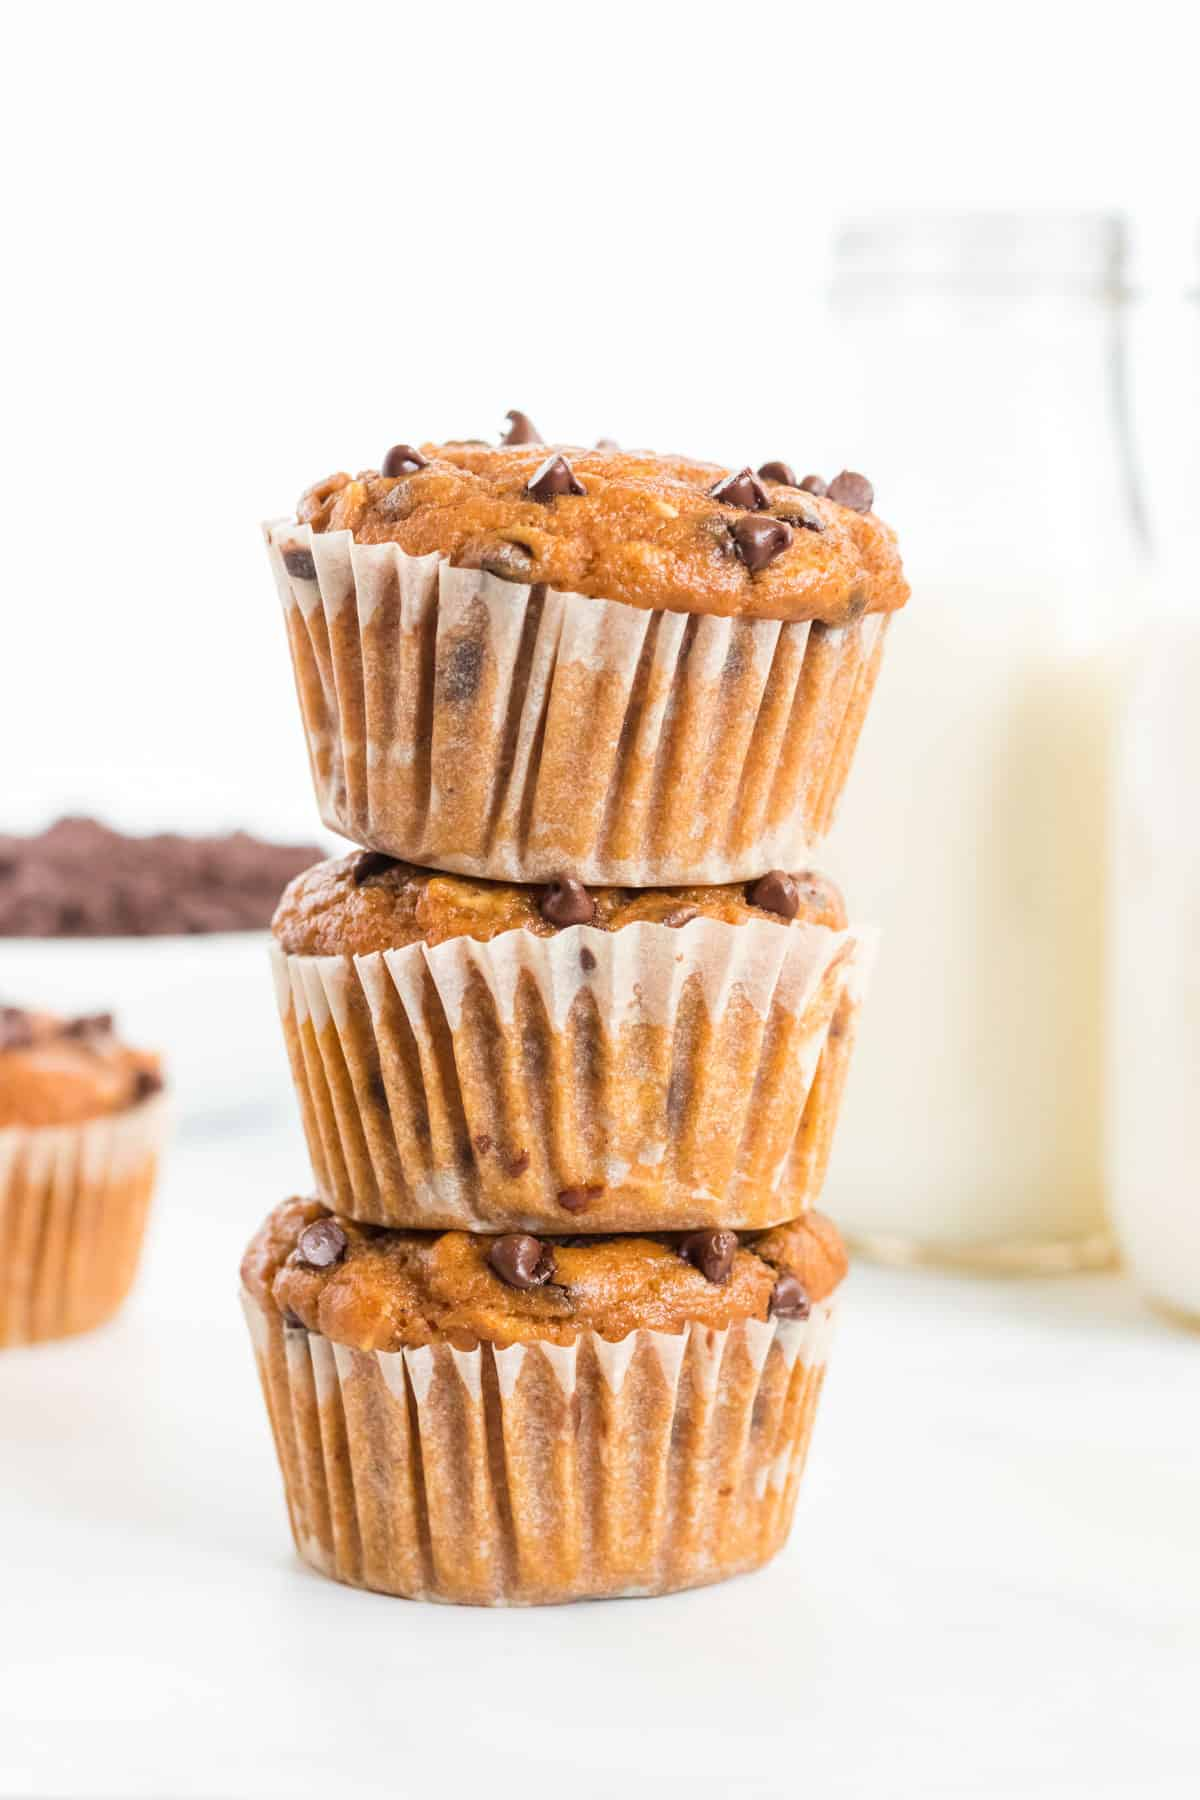 pumpkin chocolate chip muffins stacked on top of each other